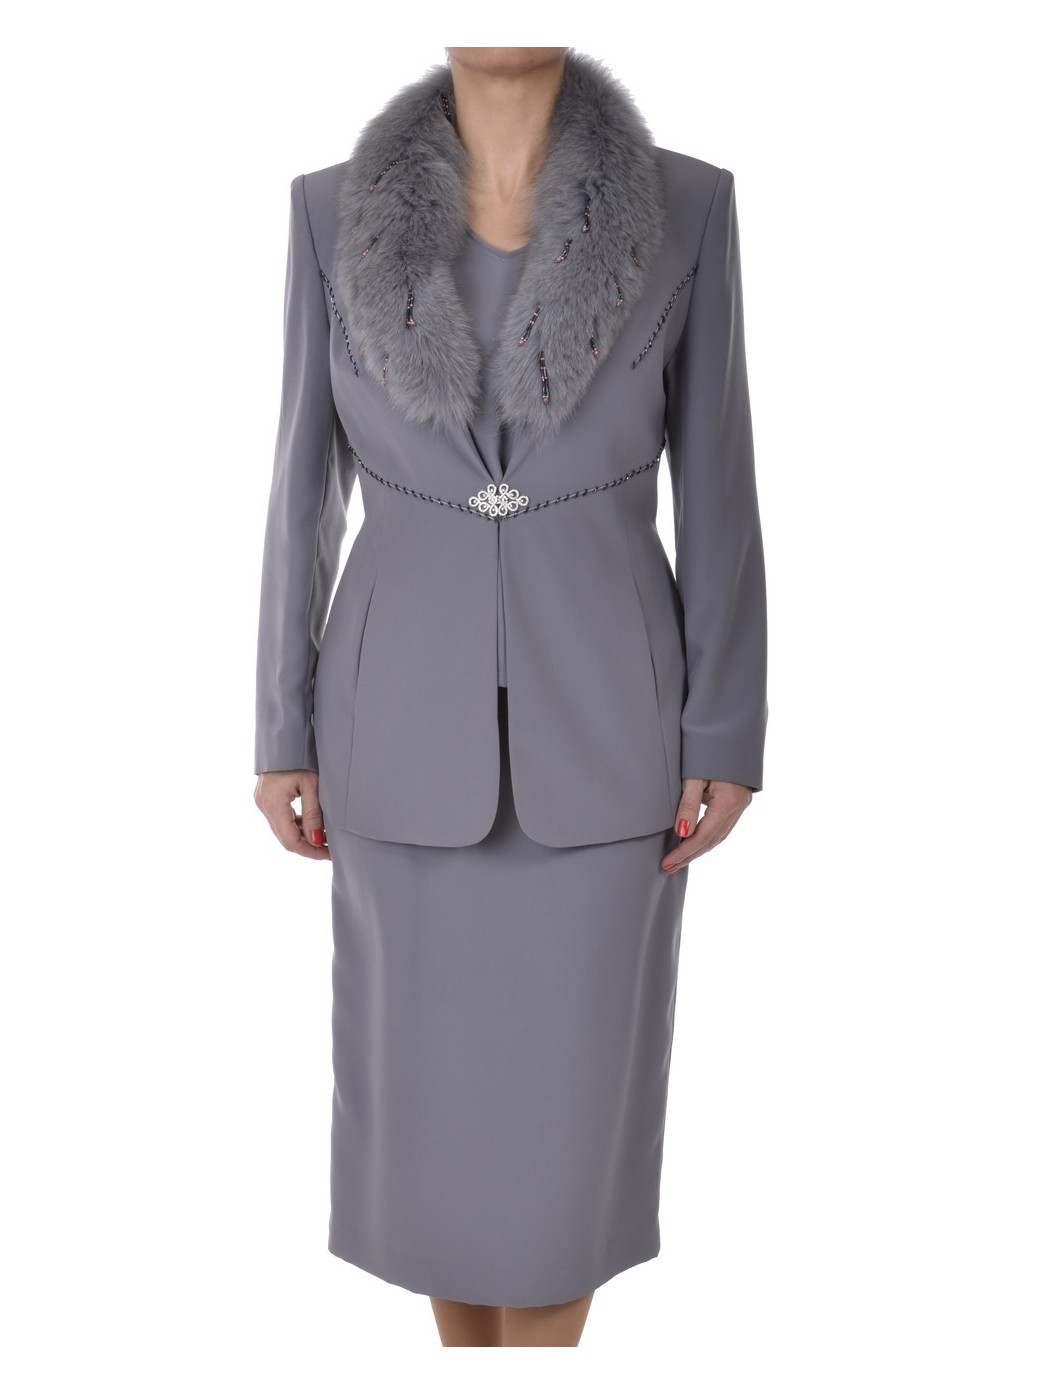 Grey suit with fur collar by Romano.